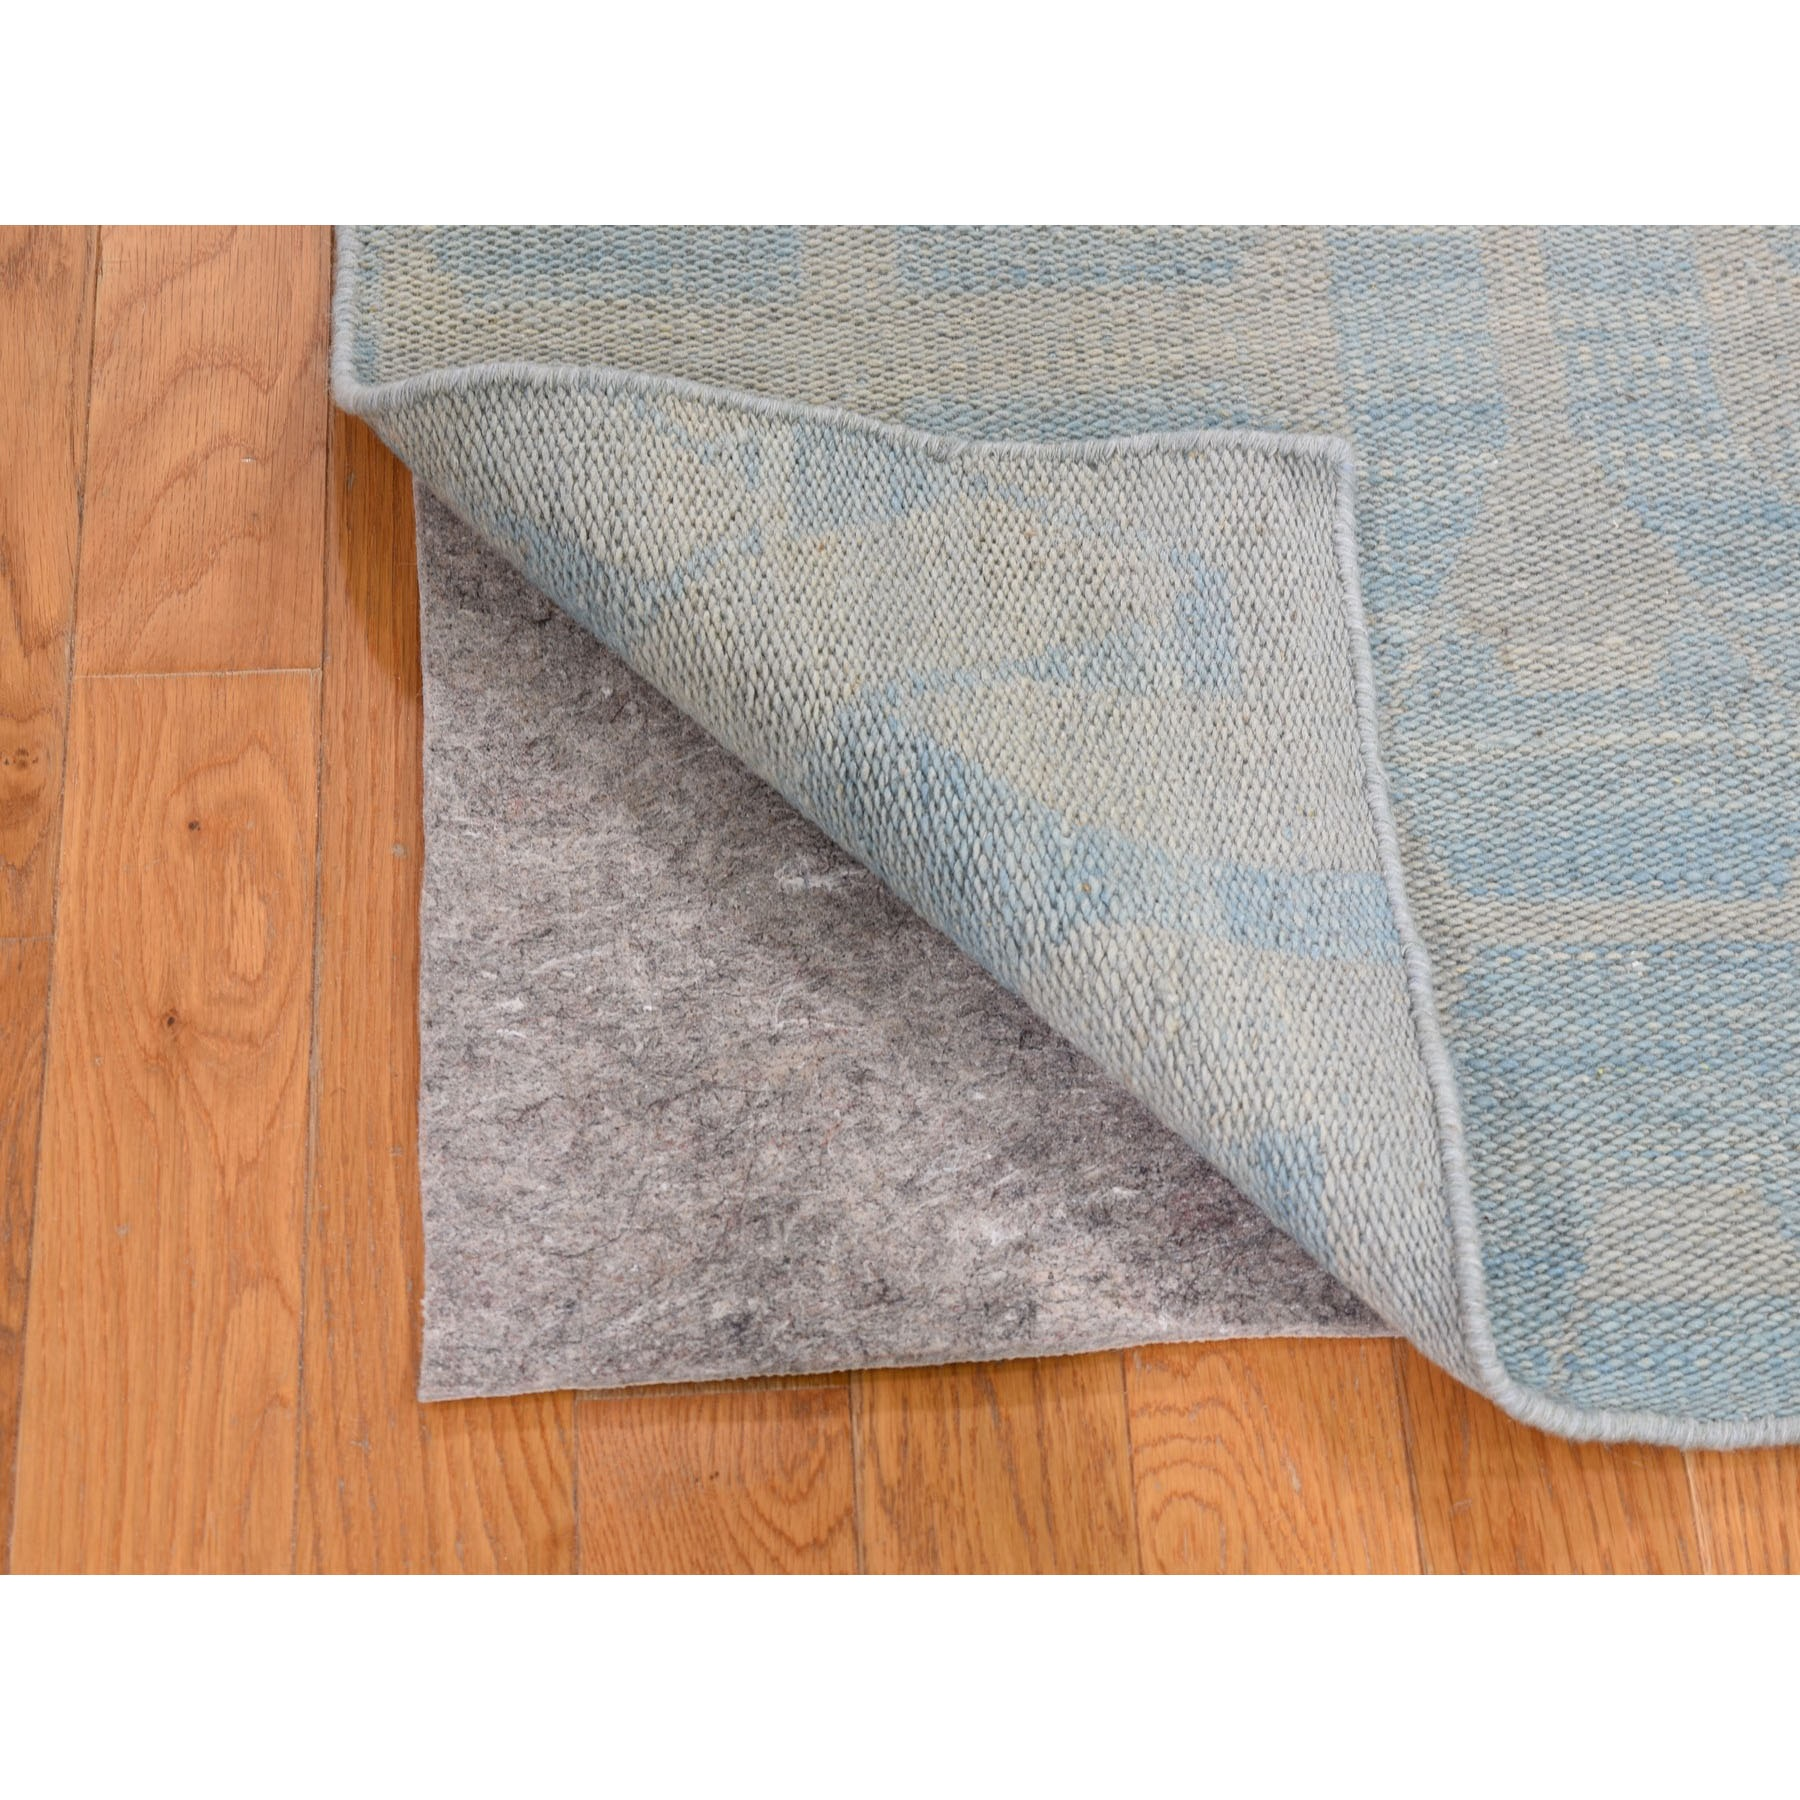 "2'6""x9'10"" Hand Woven Pure Wool Sky Blue Reversible Kilim Flat Weave Oriental Rug"